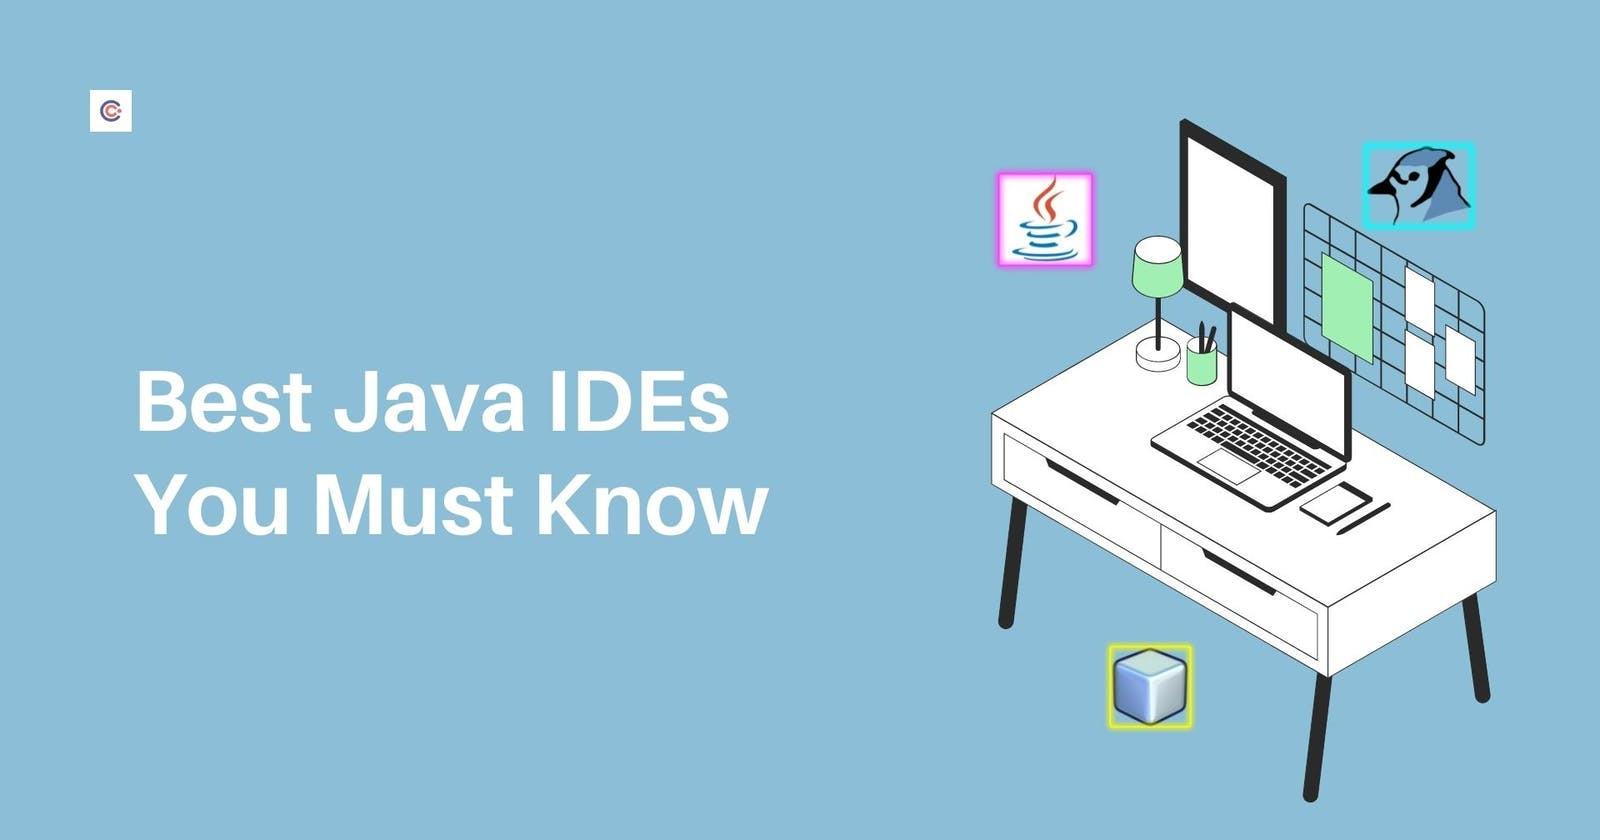 12 Best Java IDEs You Can Use In 2021